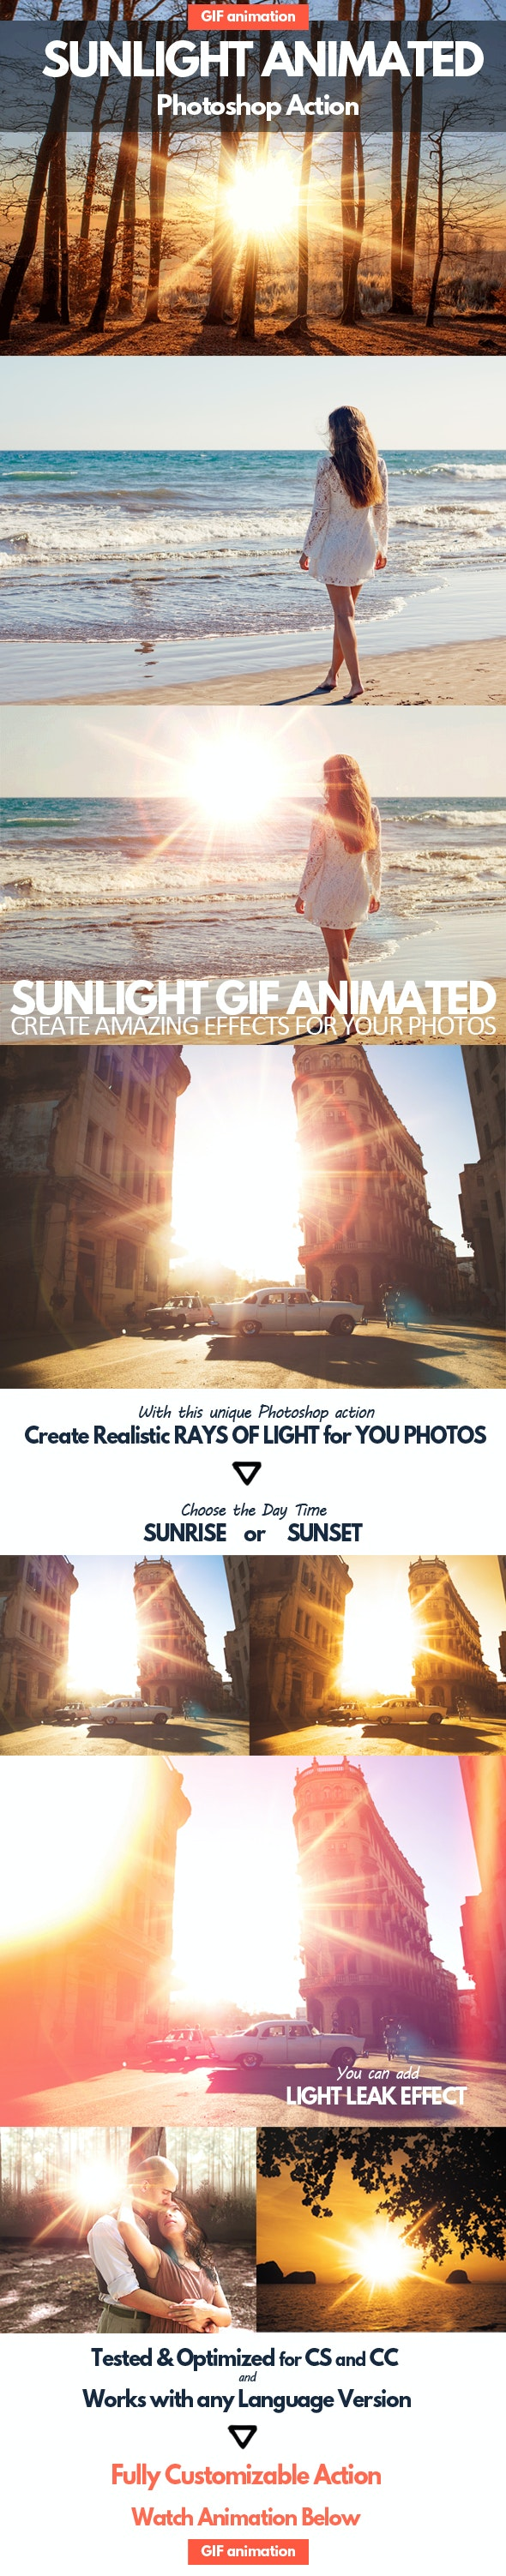 Sunlight Animated GIF Photoshop Action - Photo Effects Actions